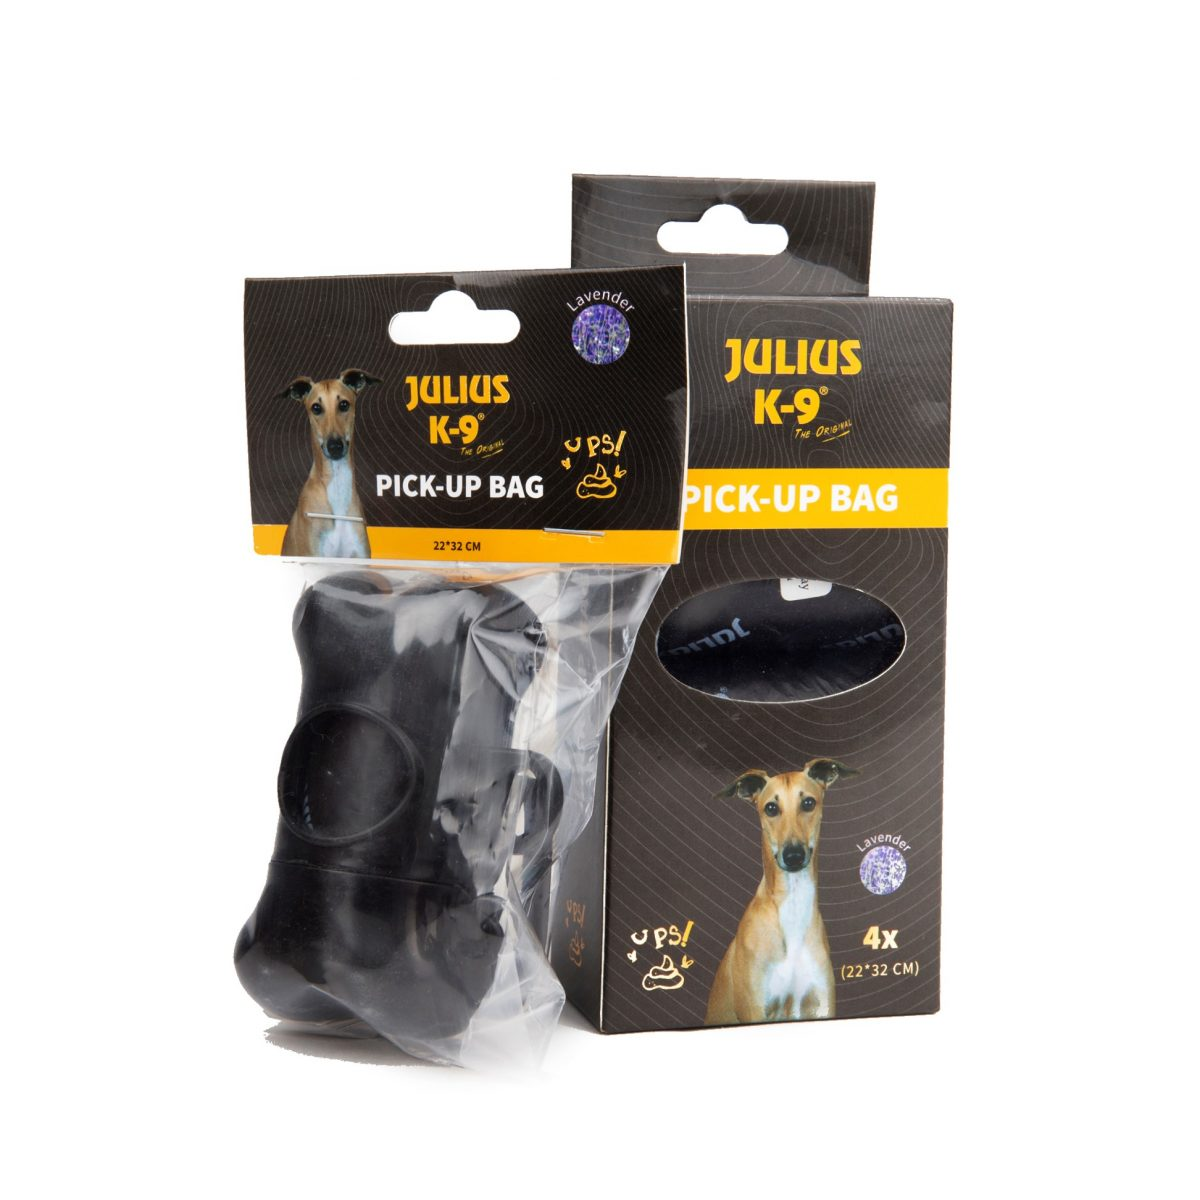 Julius k9 NZ Dog Pick Up Bag Refill with Holder in Packaging